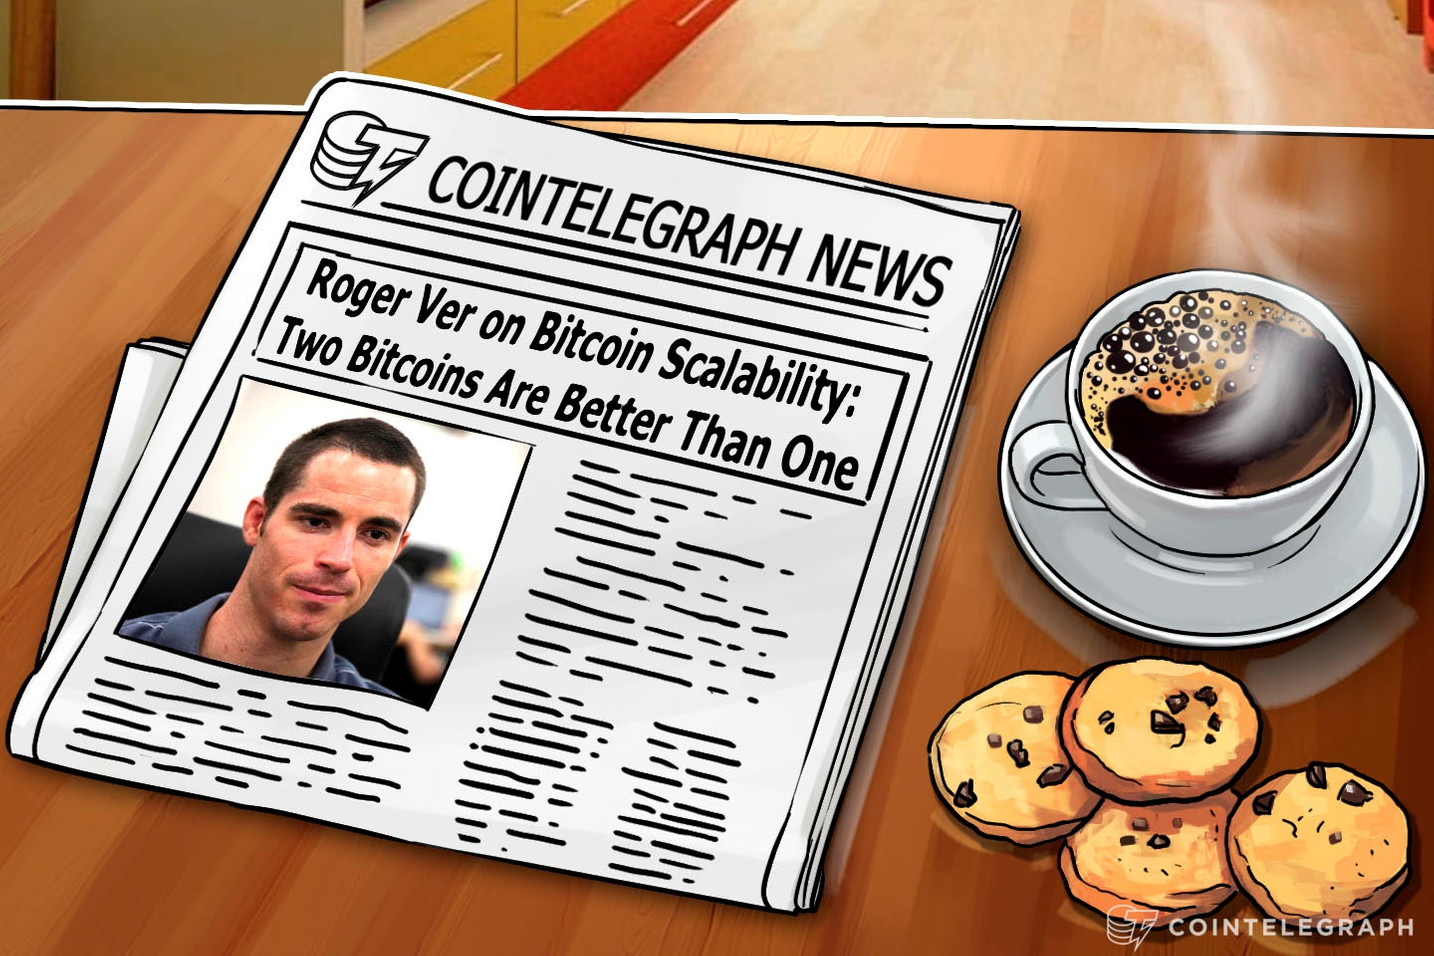 Roger Ver on Bitcoin Scalability:  Two Bitcoins Are Better Than One